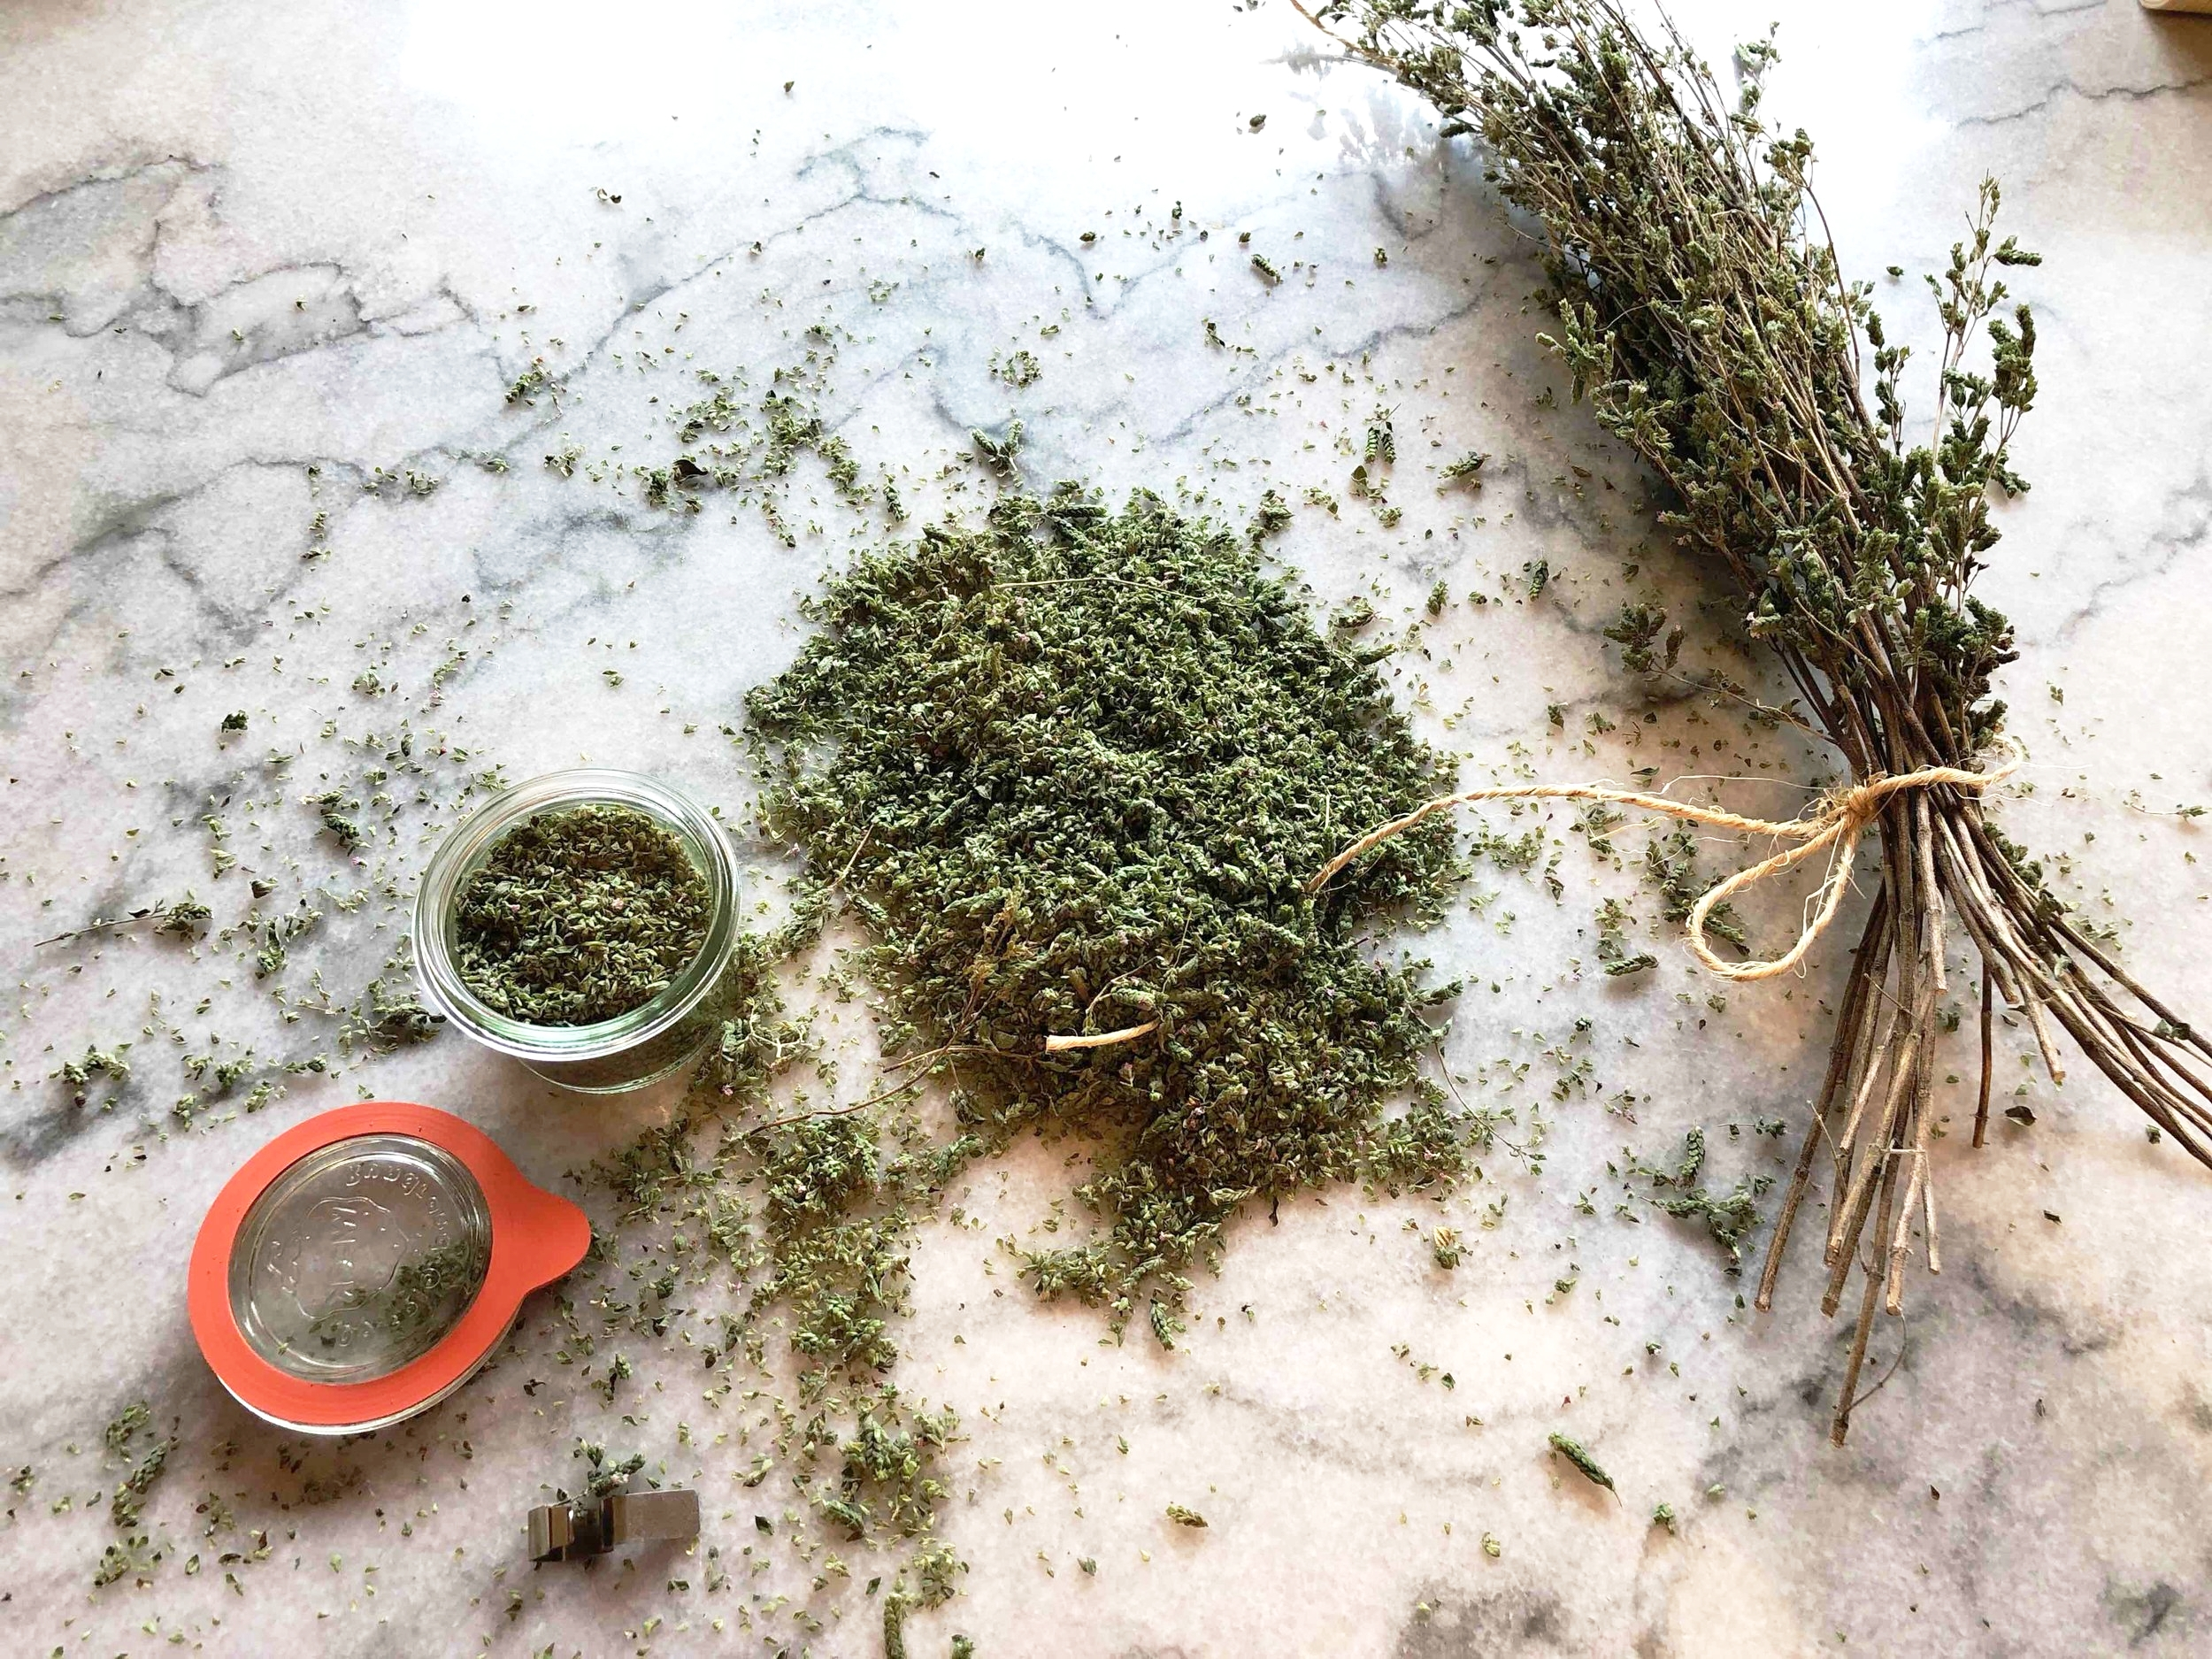 Rub the bundles and shake off the flakes. Remove any twigs and package in air tight containers.